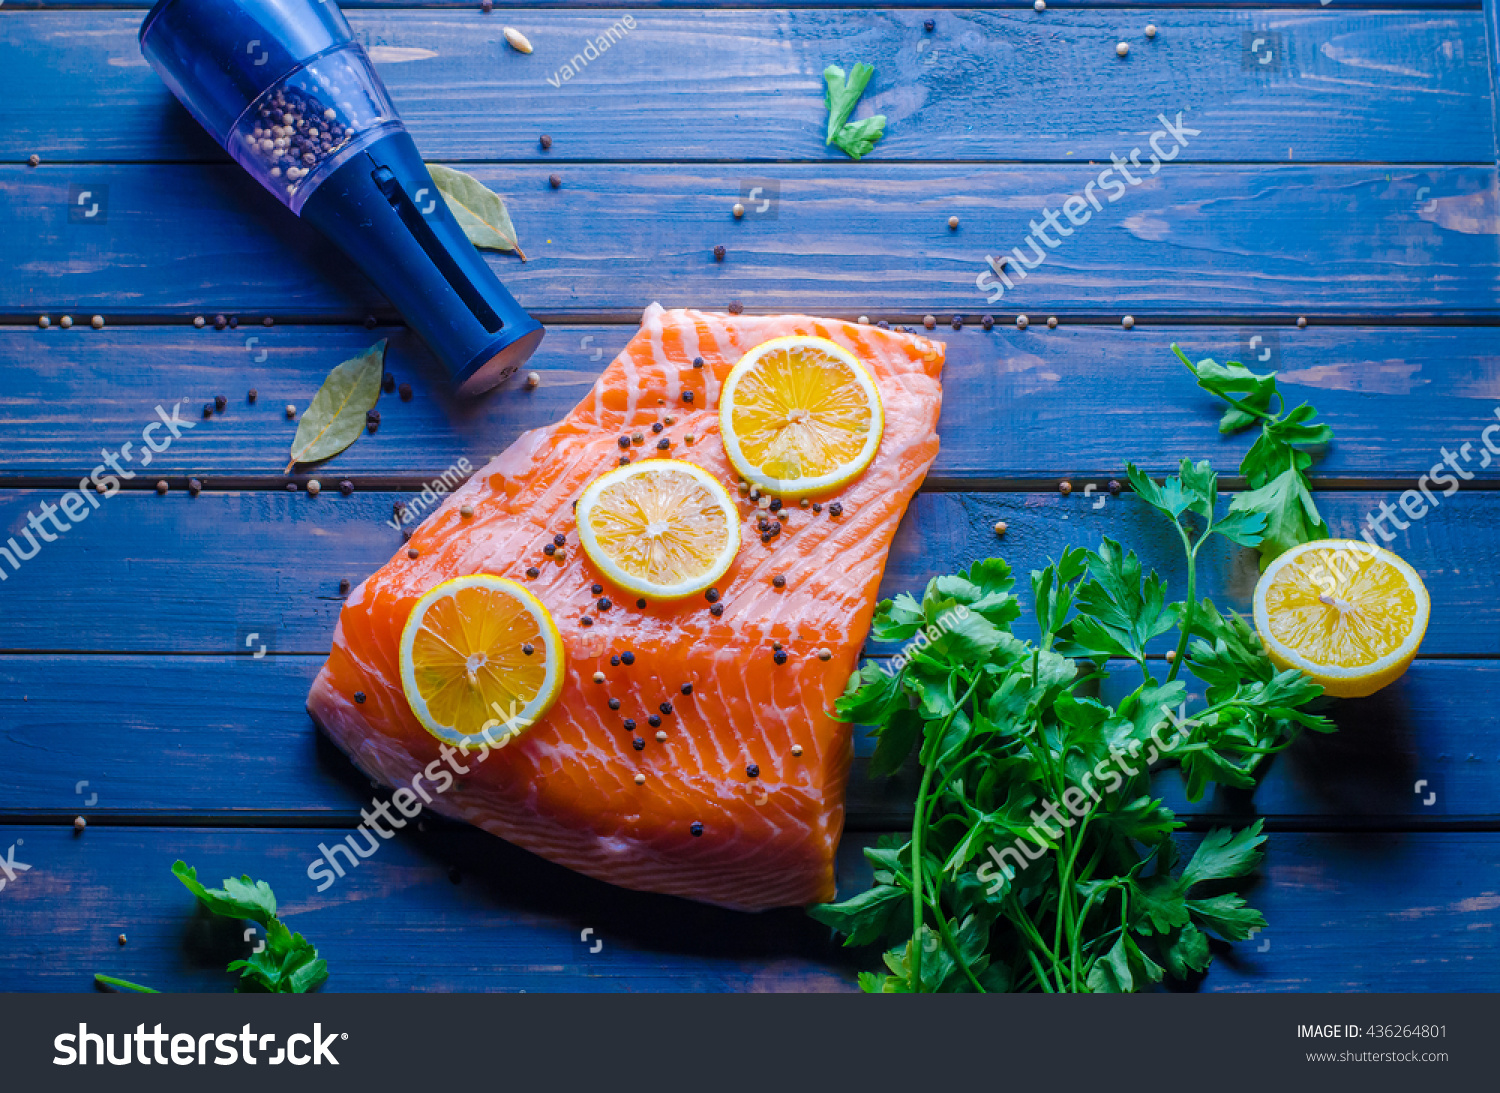 Red fish fillet stock photo 436264801 shutterstock for Red fish fillet